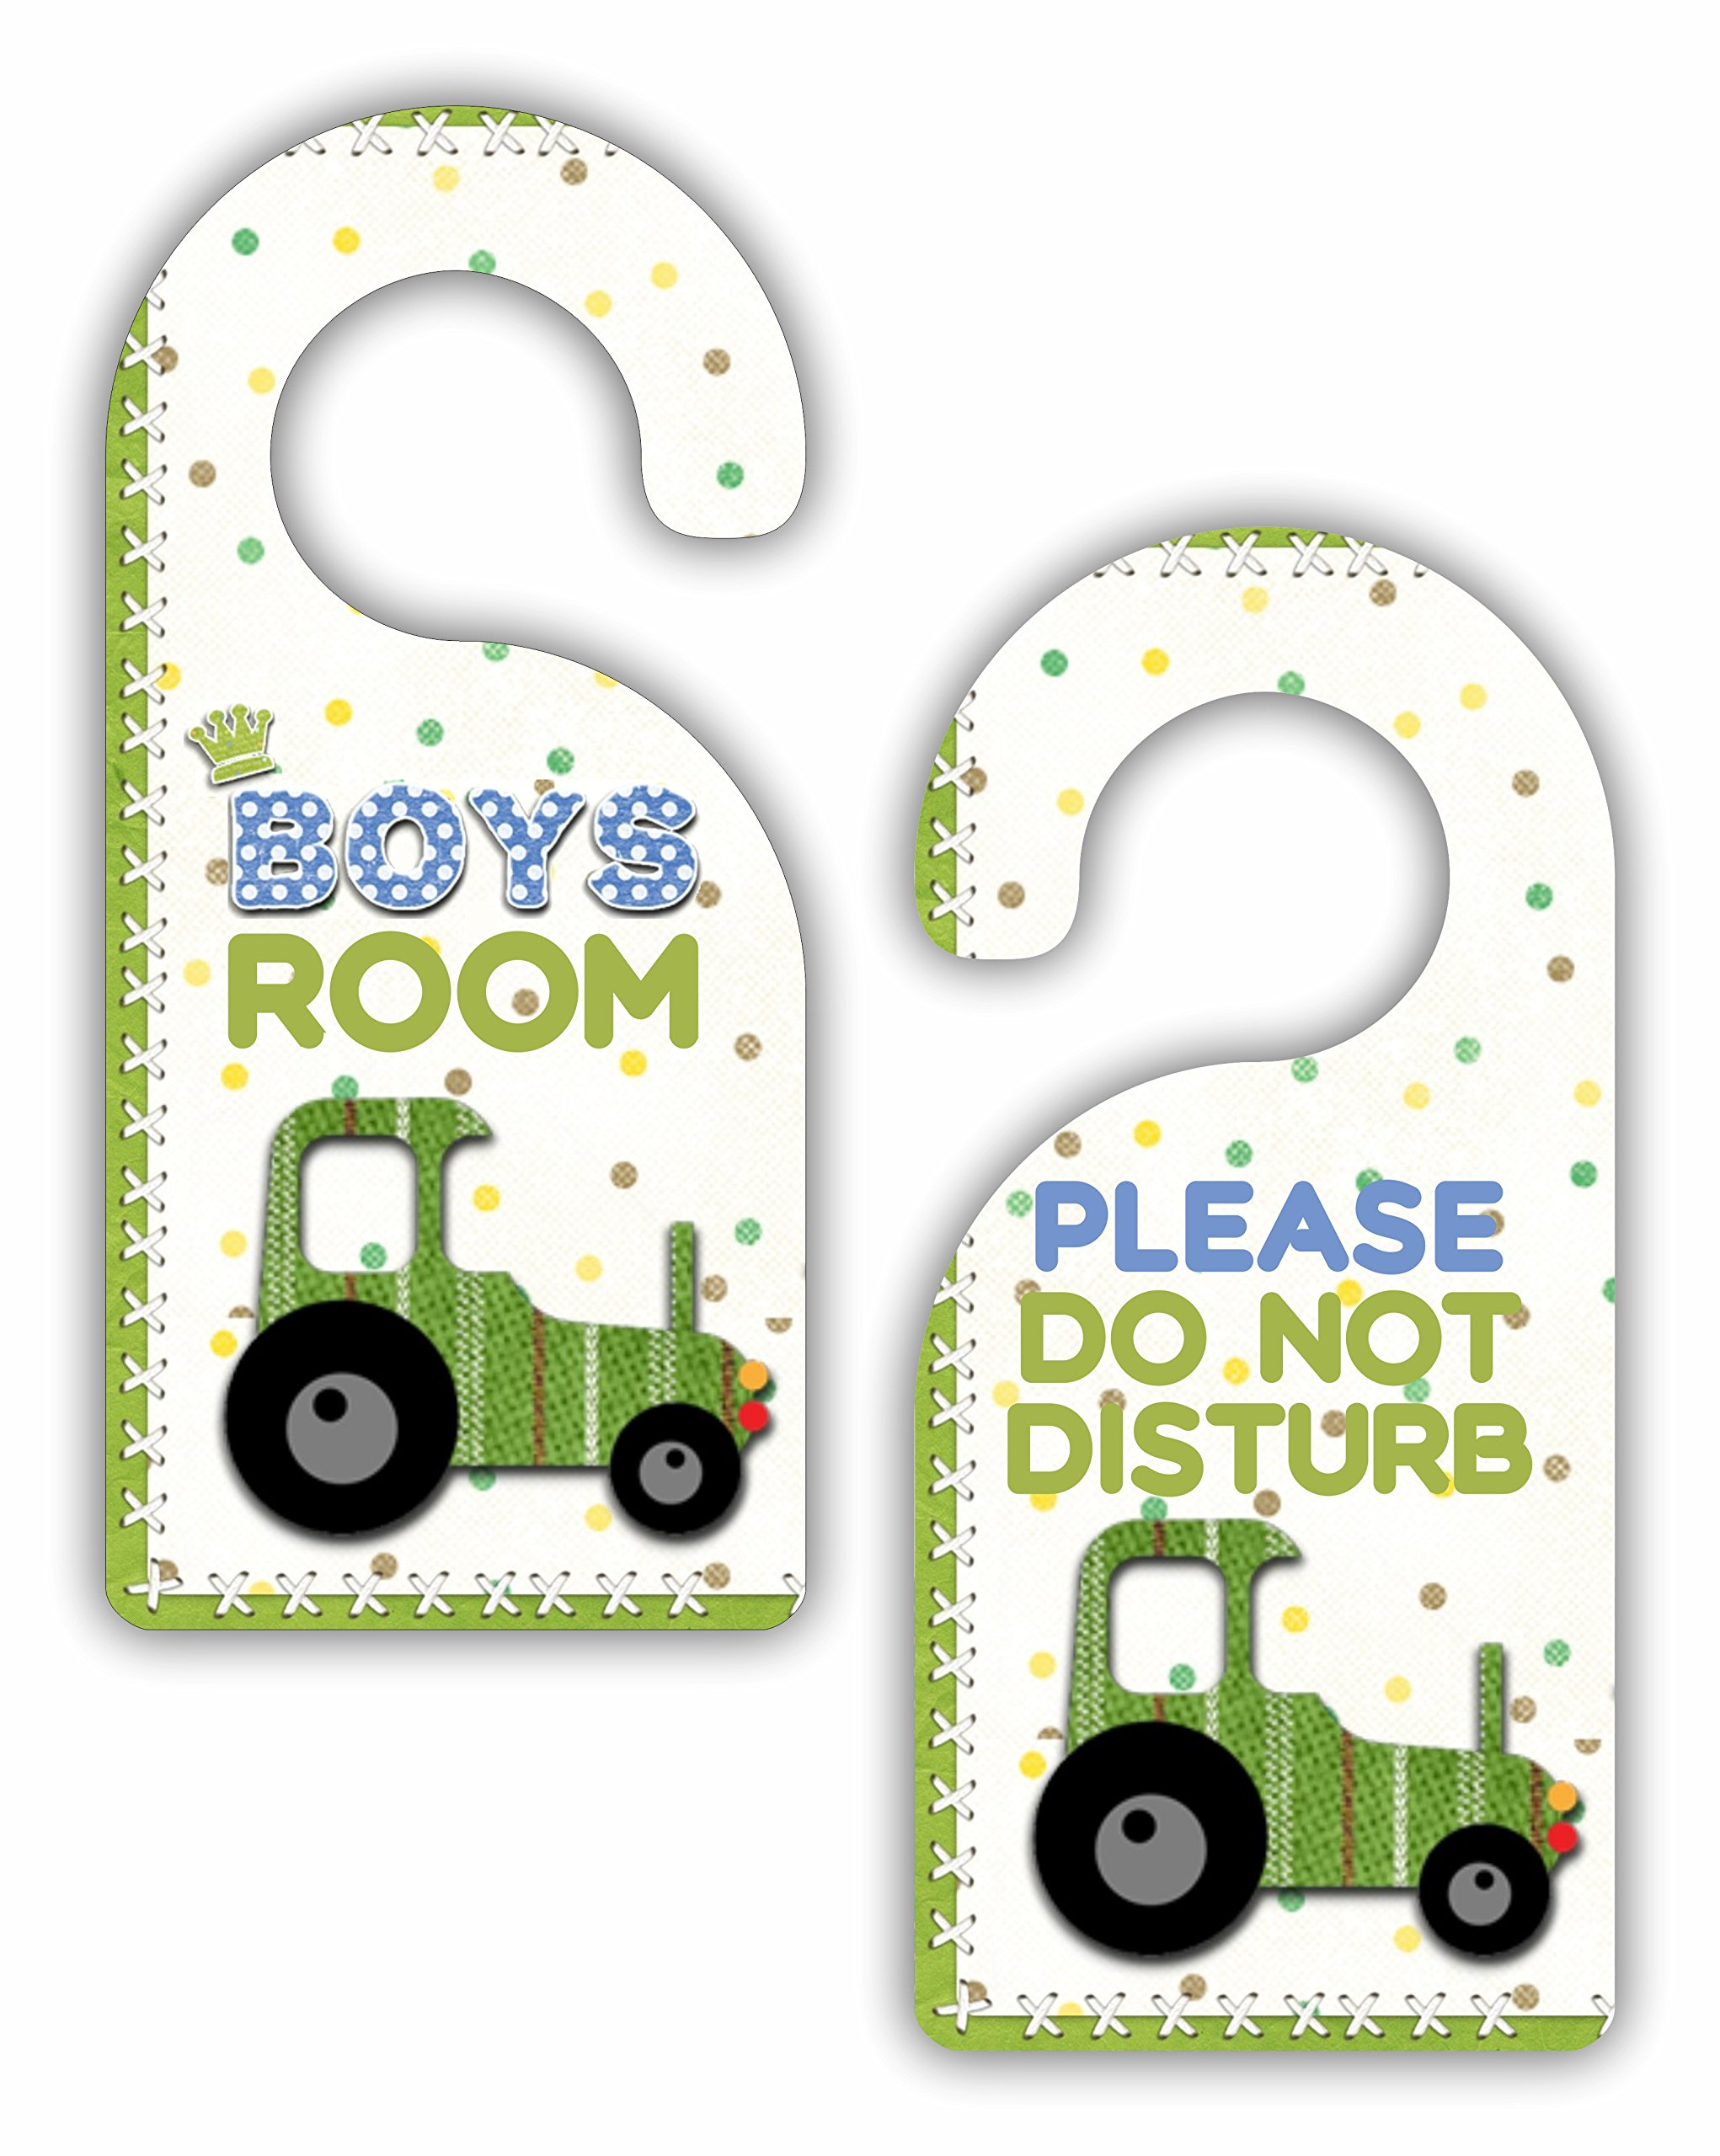 Boys Room - Please Do Not Disturb - Truck - Bedroom Door Sign Hanger - Double Sided - Hard Plastic - Glossy Finish